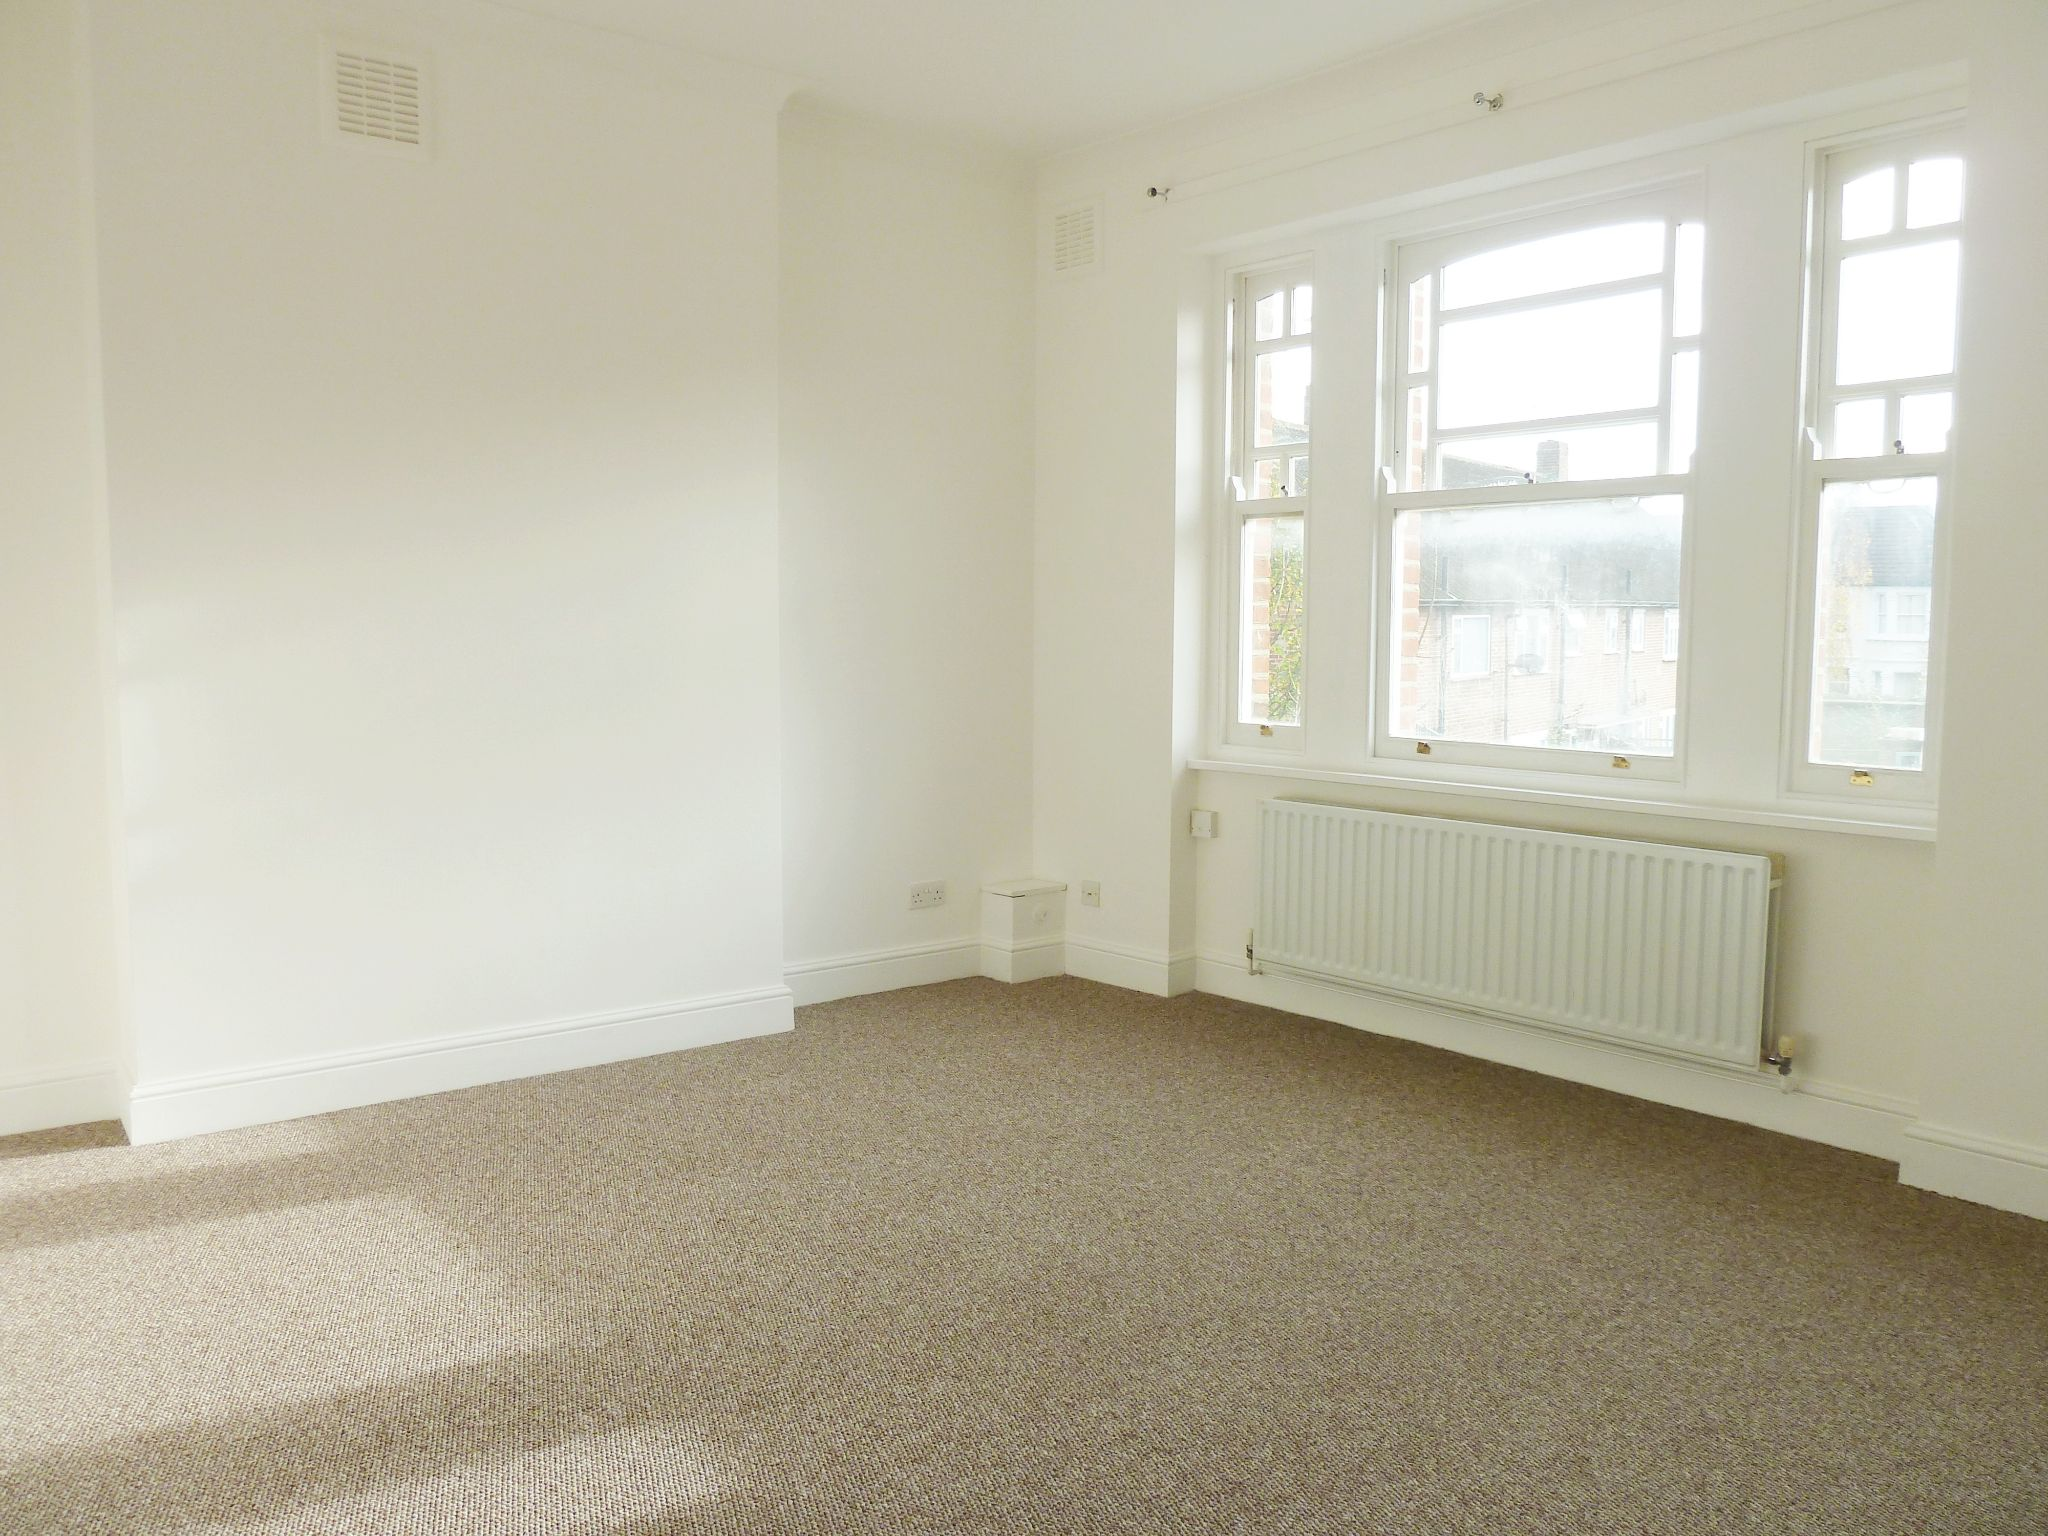 1 bedroom flat flat/apartment To Let in London - Spacious Bedroom - Double Glazing